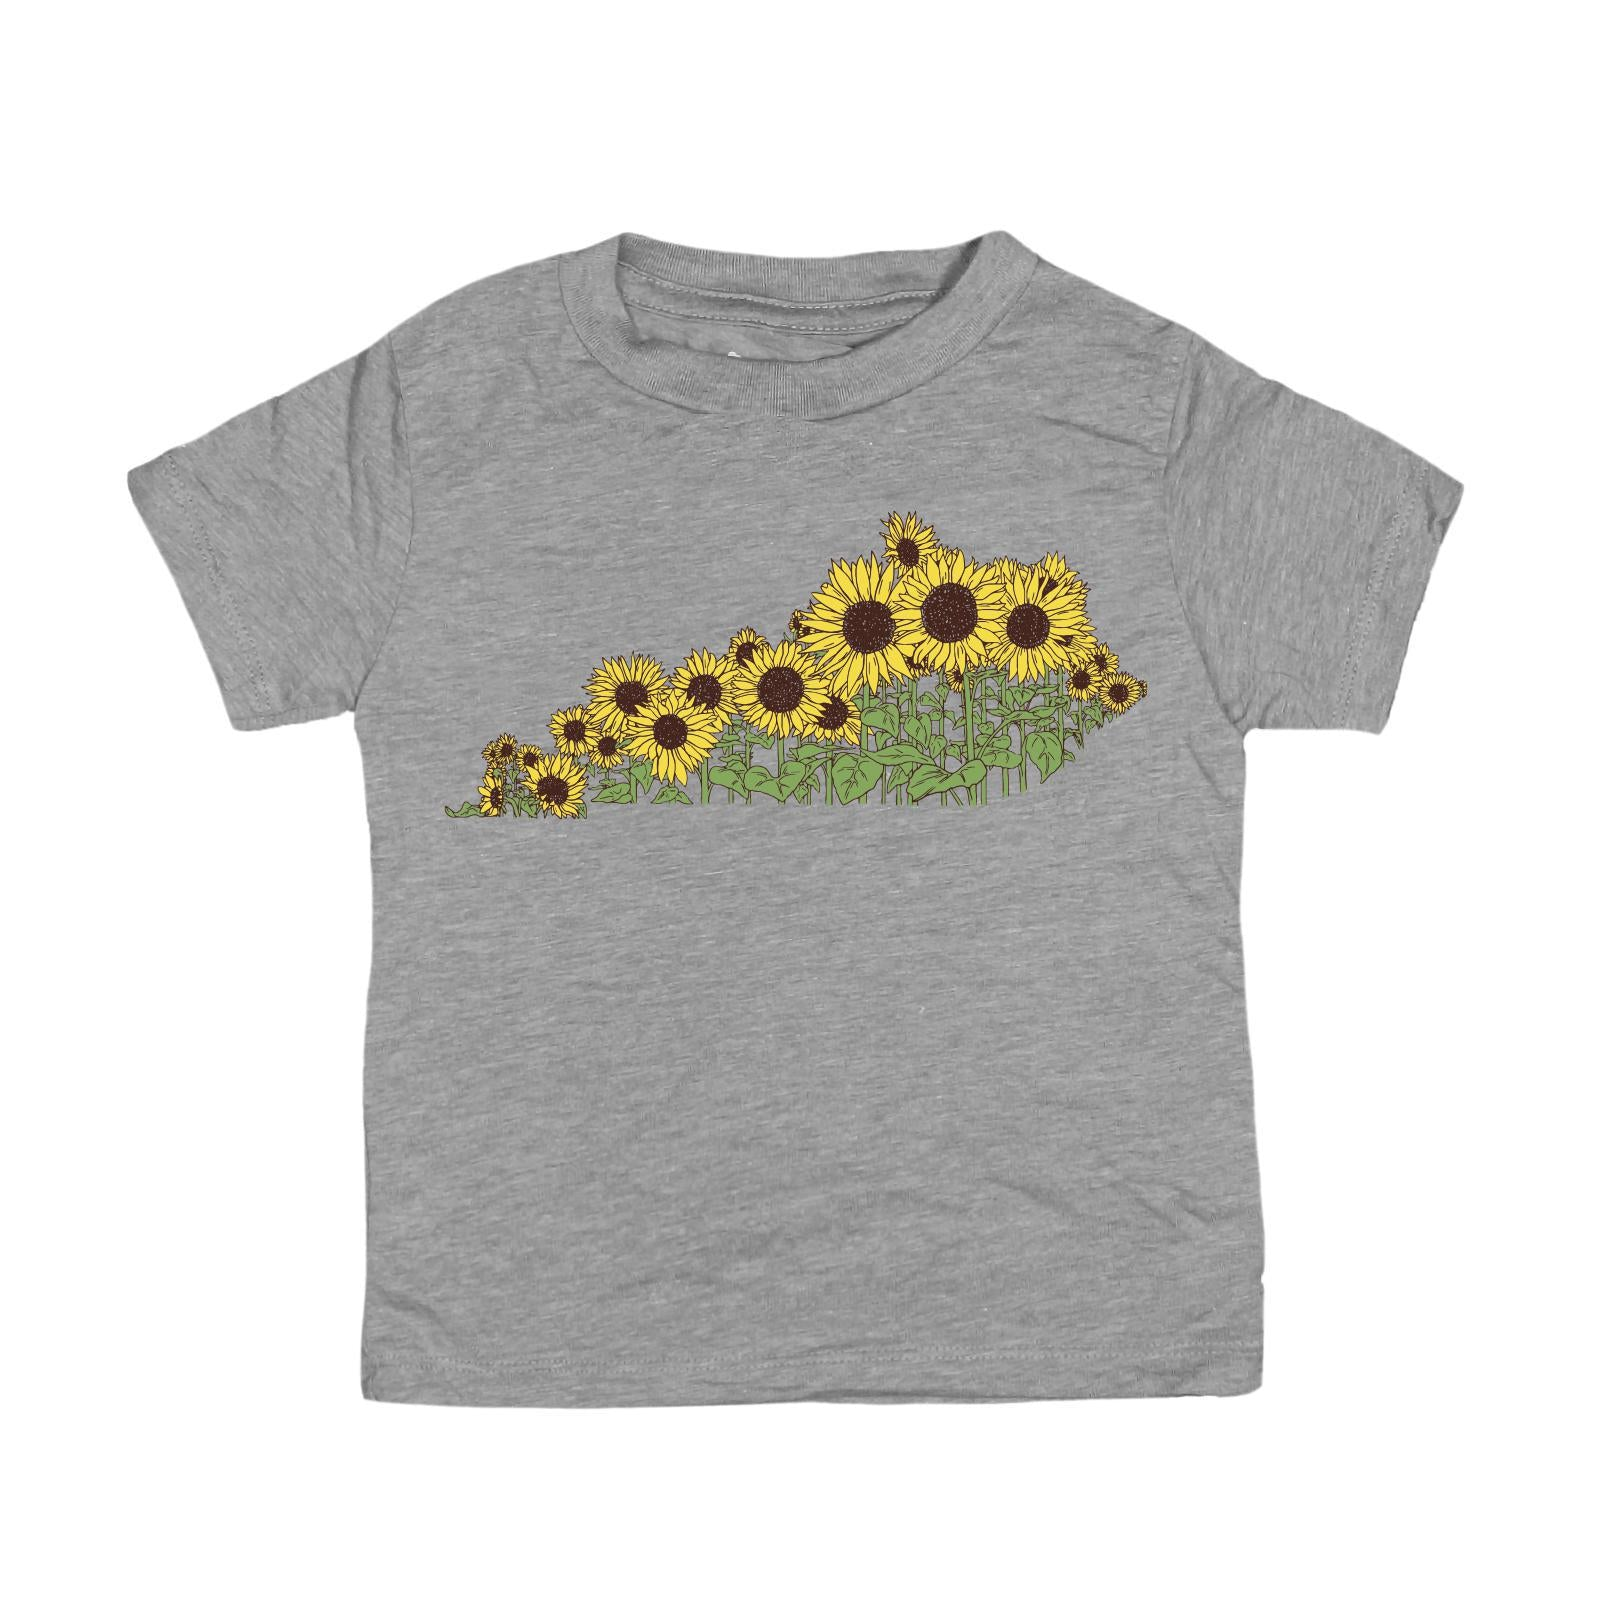 Sunflower KY Kids T-Shirt-Kids-KY for KY Store